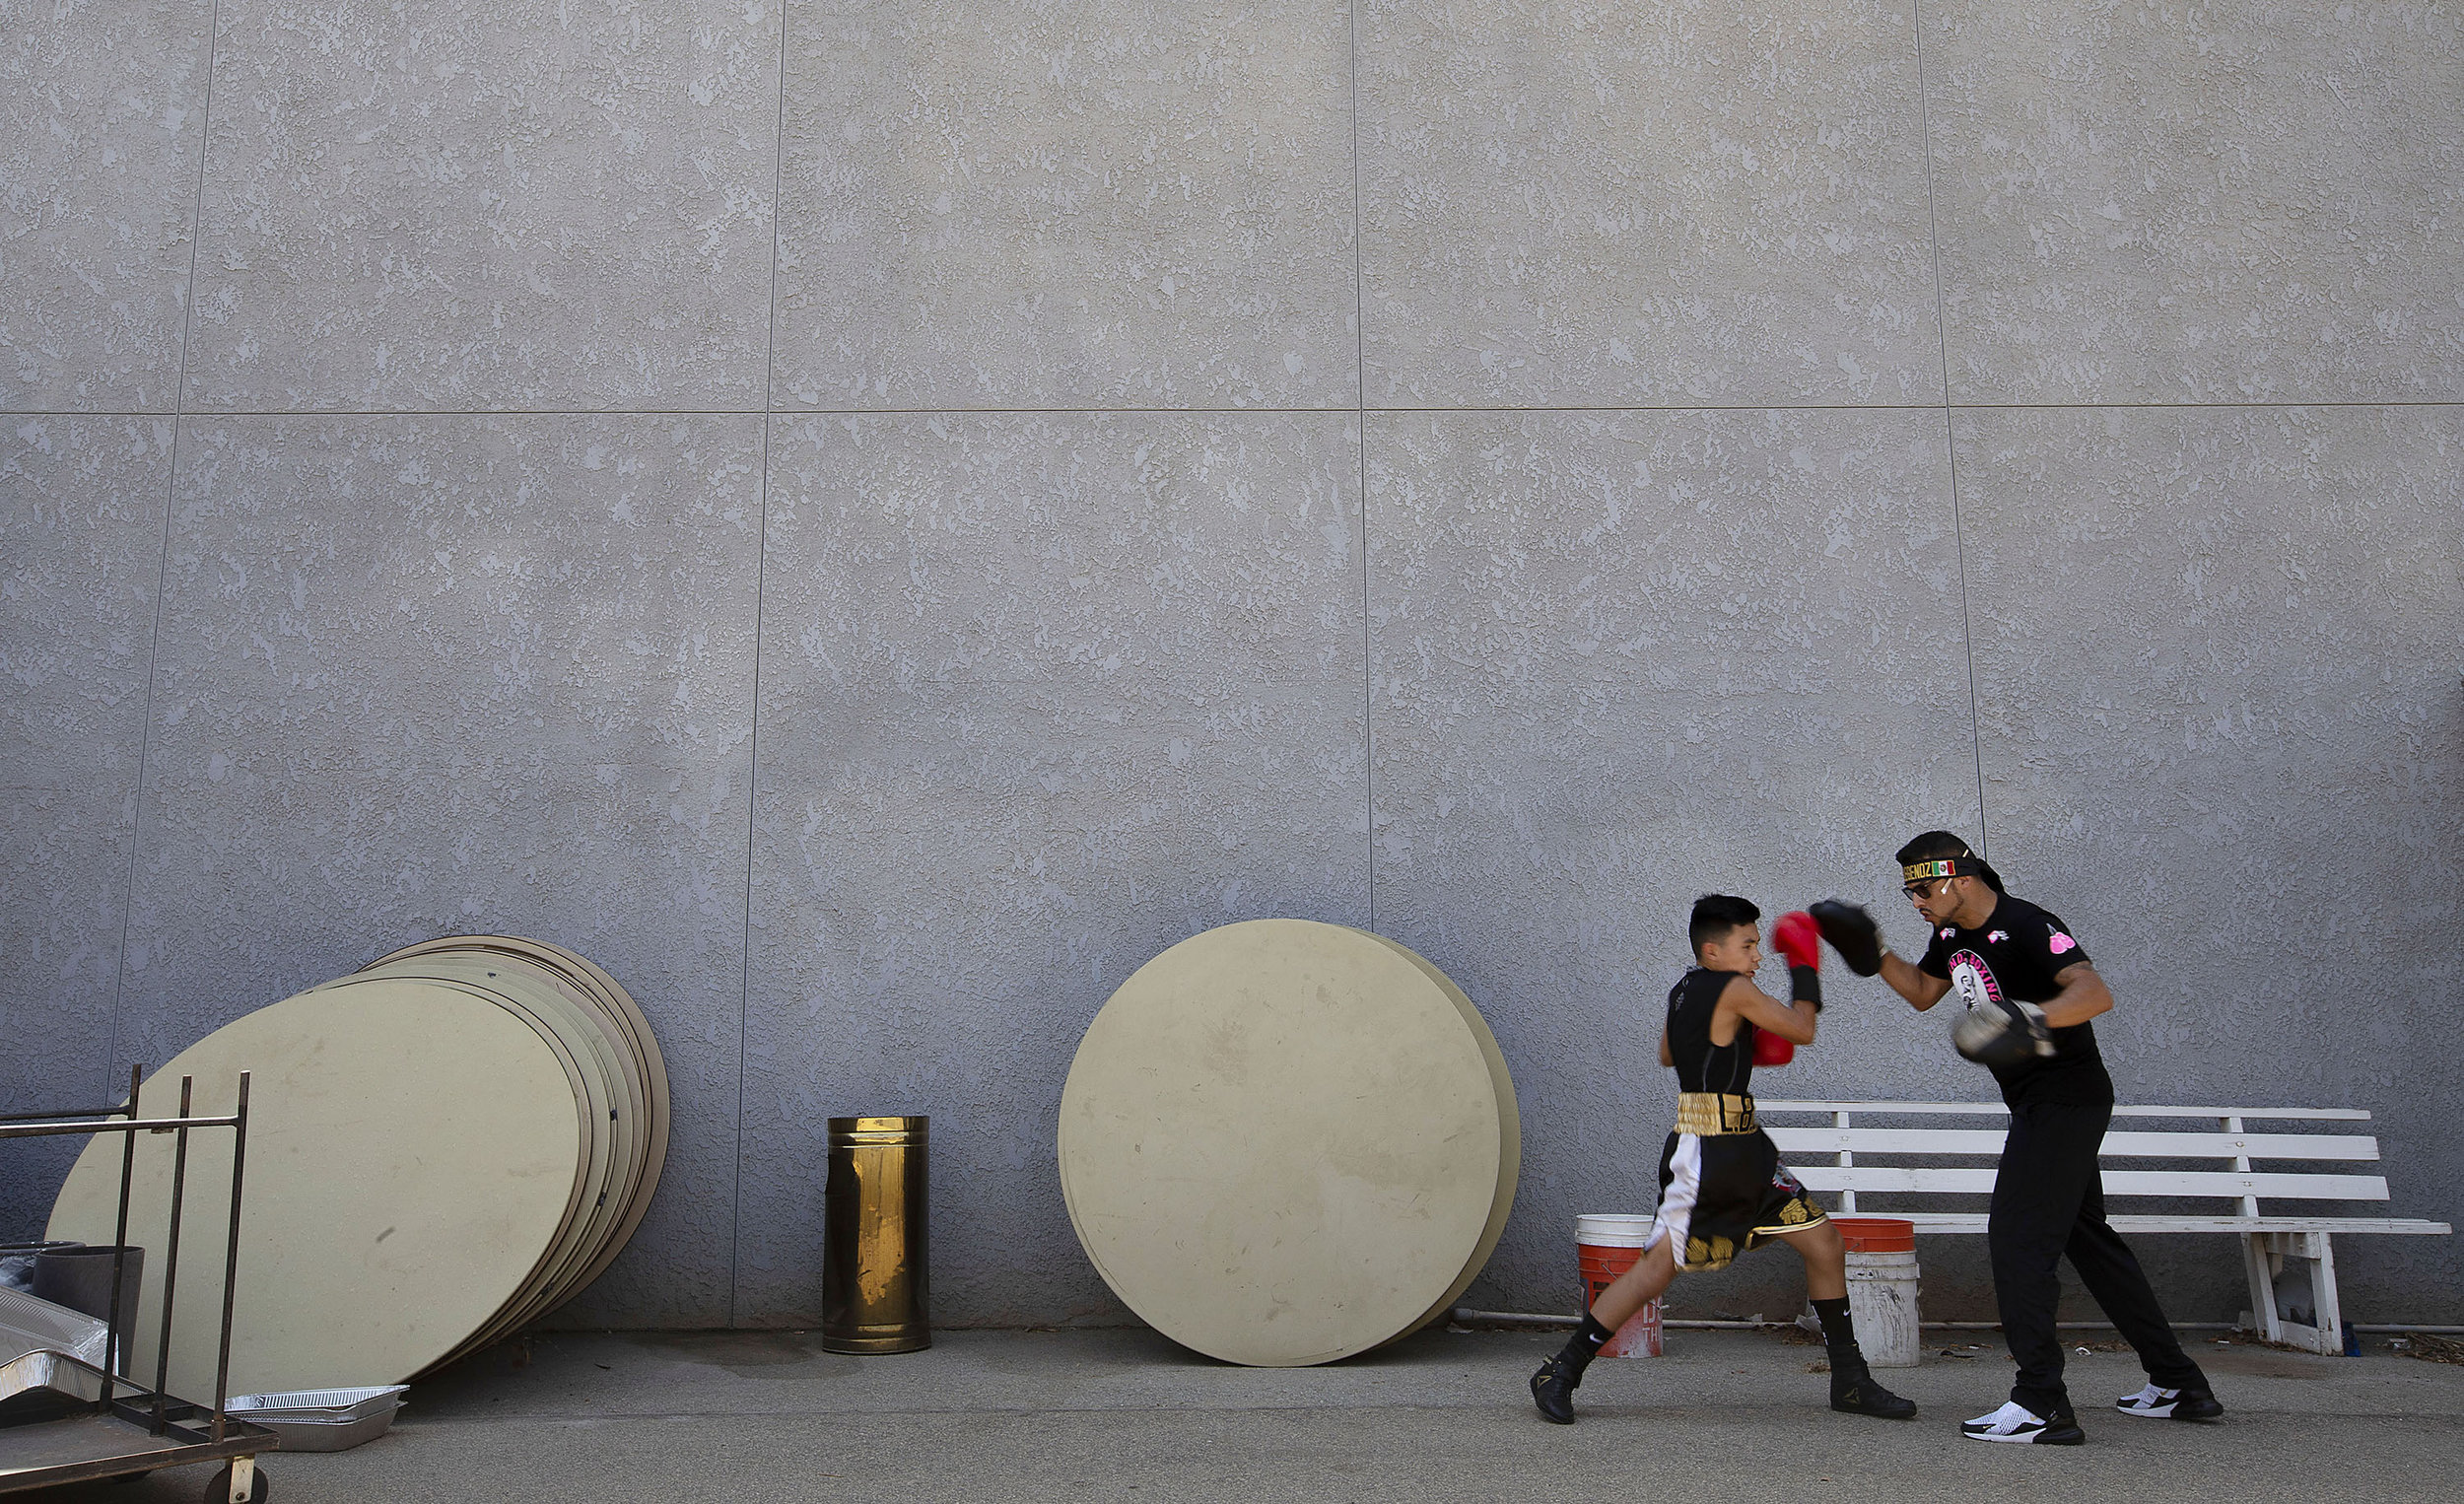 Legendz Boxing Club's Jonathan Trevino, 12, warms up outside with trainer Jose Ruvalcaba for the first bout of the day during the Future Olympics Champions at  Lake Perris Sports Pavilion in Perris on Saturday, August 18, 2018.